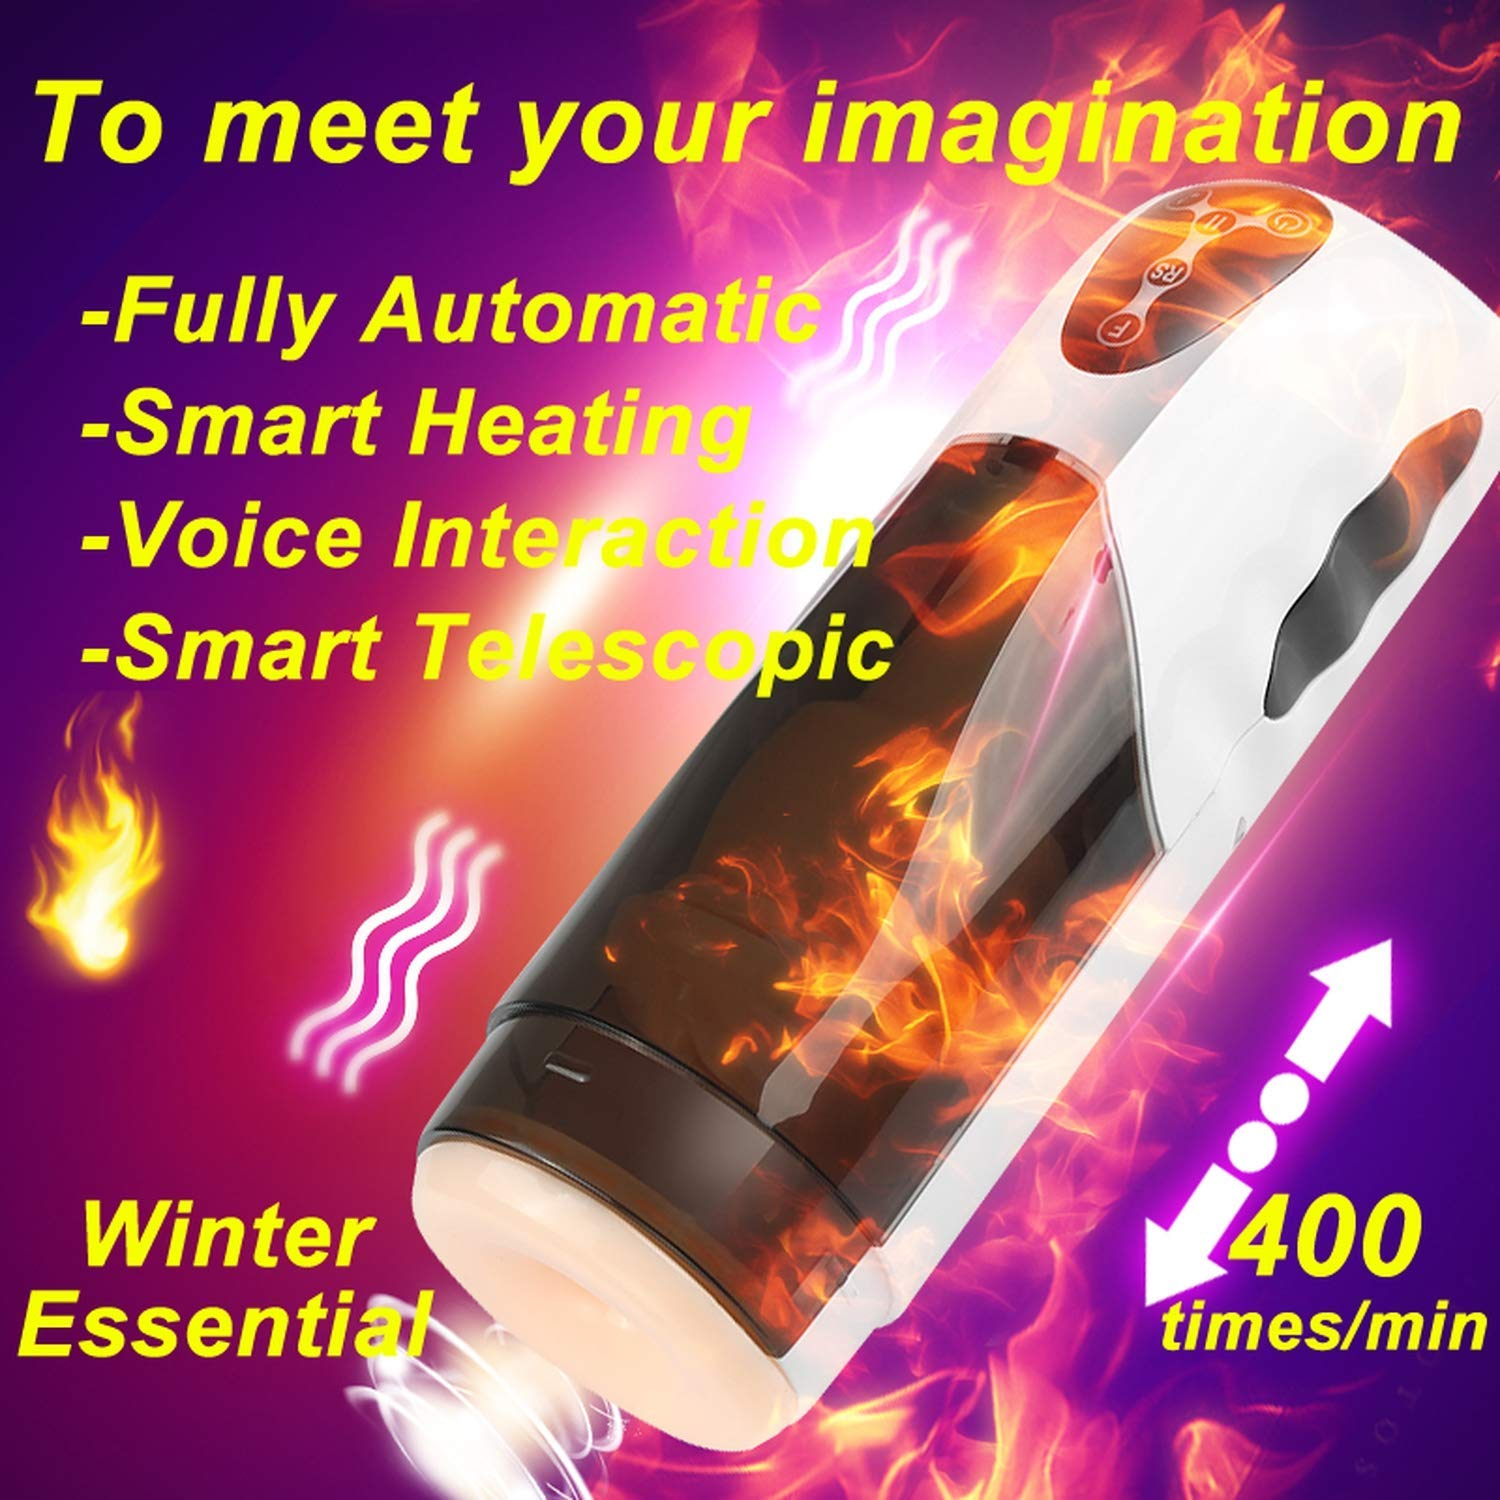 Massage Toys Artificial Piston Male Ma^ssagér Intelligent Heating Telescopic Funny Machine Girl Funny Funny Toys for Men IUEJNF Tshirt